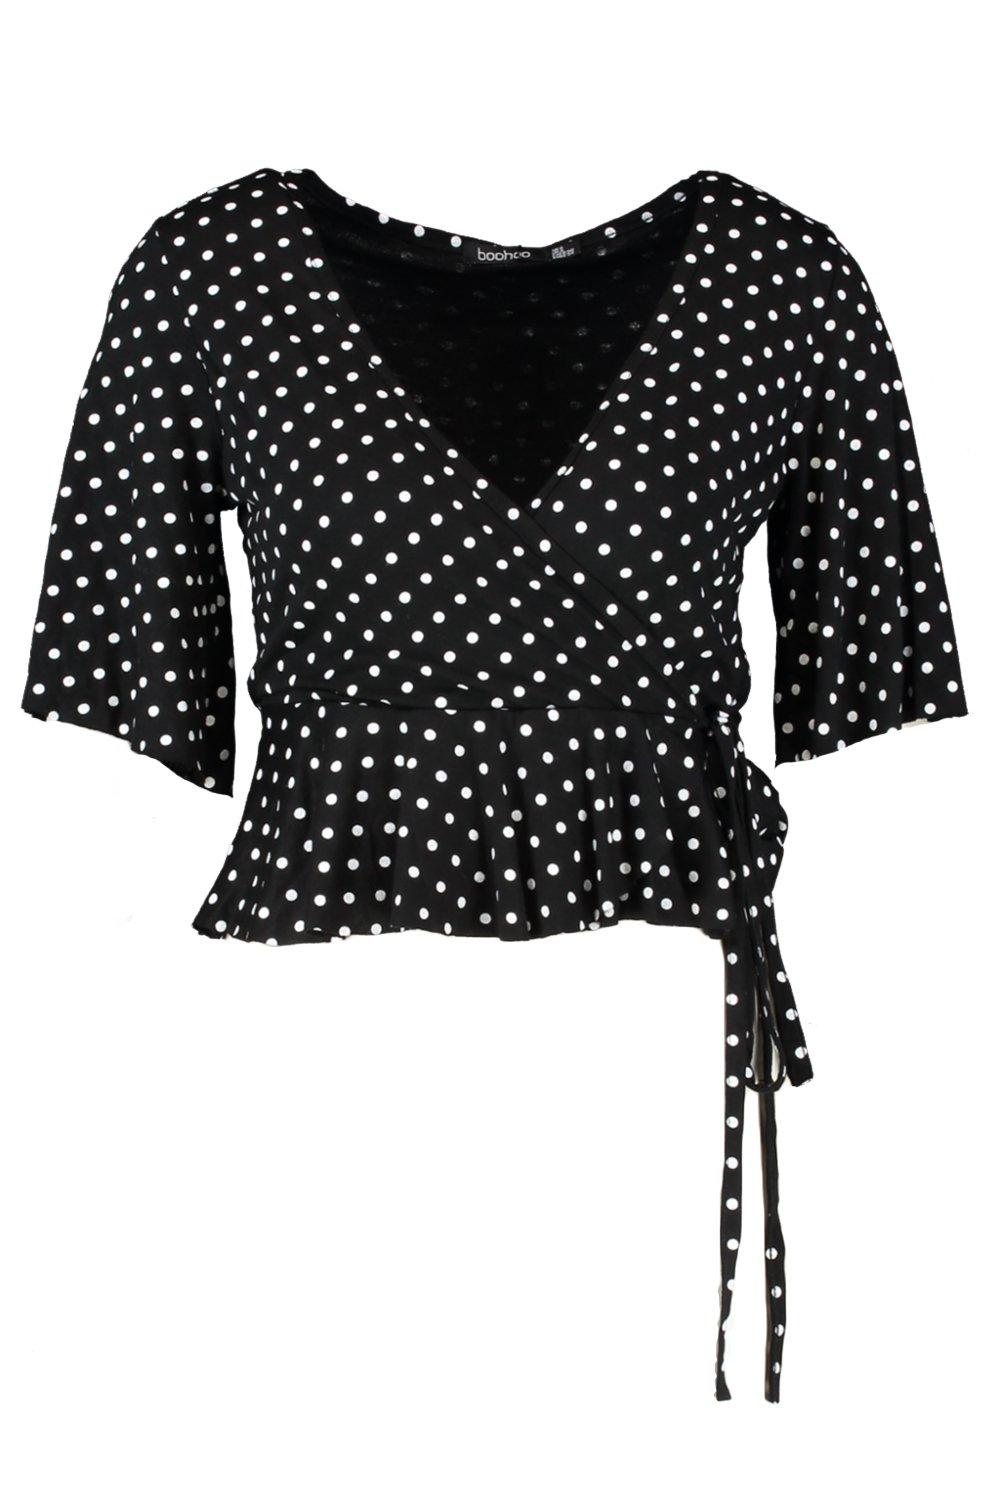 Petite Dot Blouse black Wrap Polka Frill Sleeve Hr5HUq